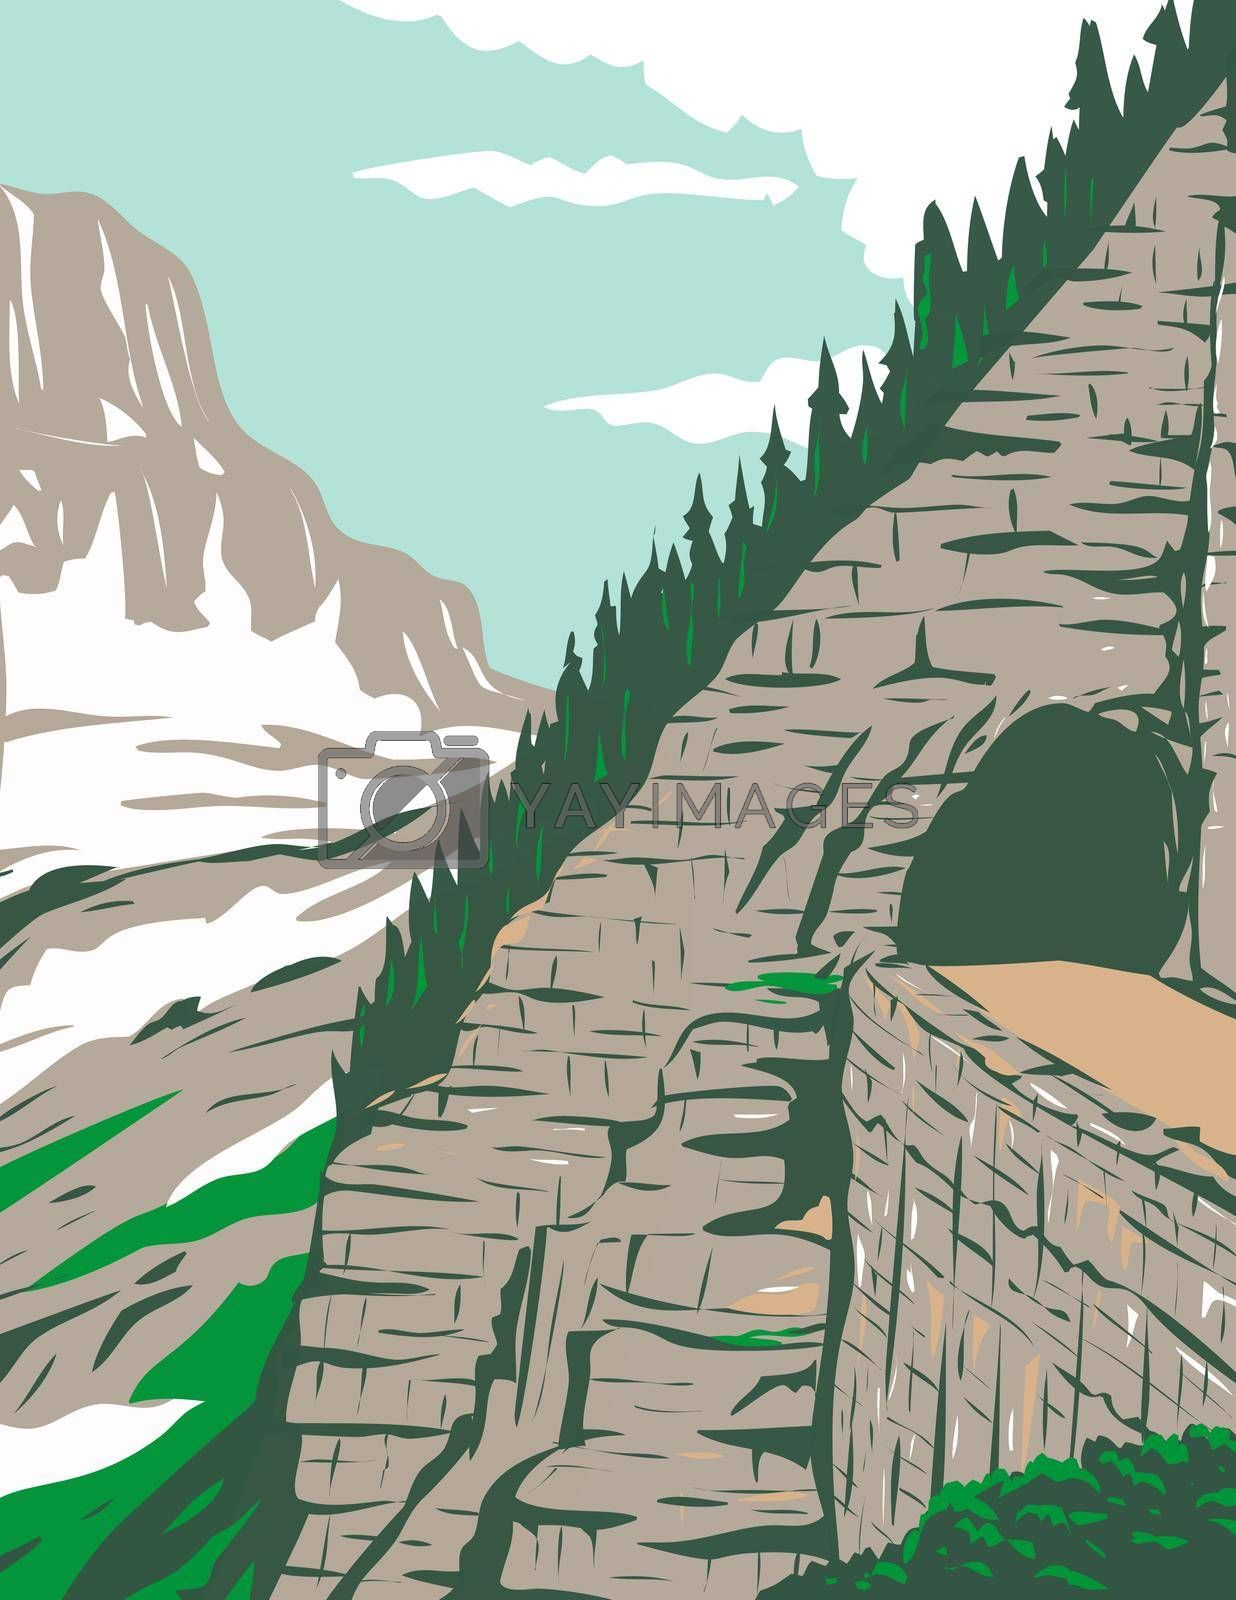 WPA poster art of Going-to-the-Sun Road in Eastside tunnel and Mt. Reynolds, Glacier National Park, Montana, United States in works project administration or federal art project style.